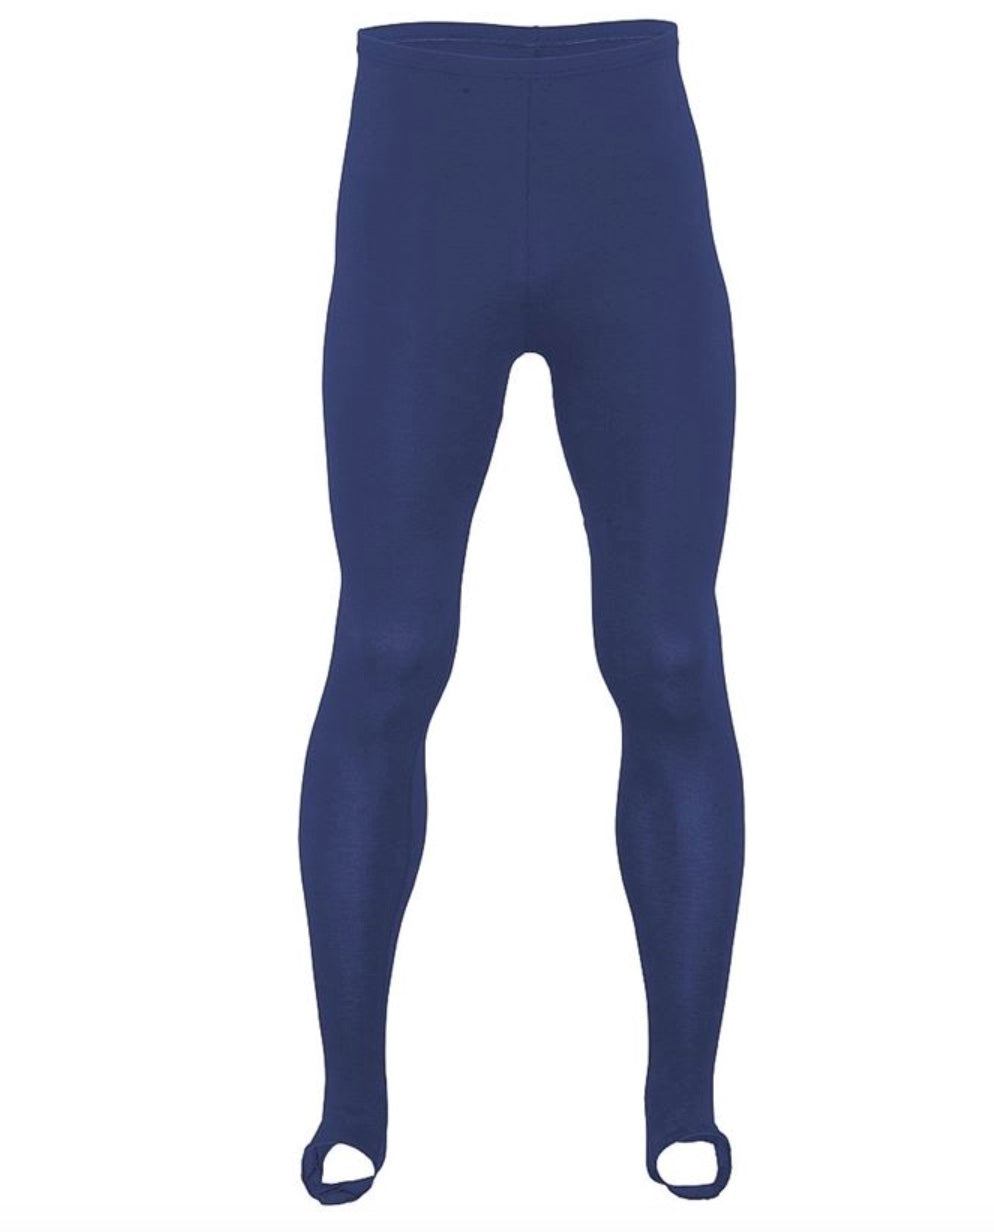 Mens RAD Ballet Tights